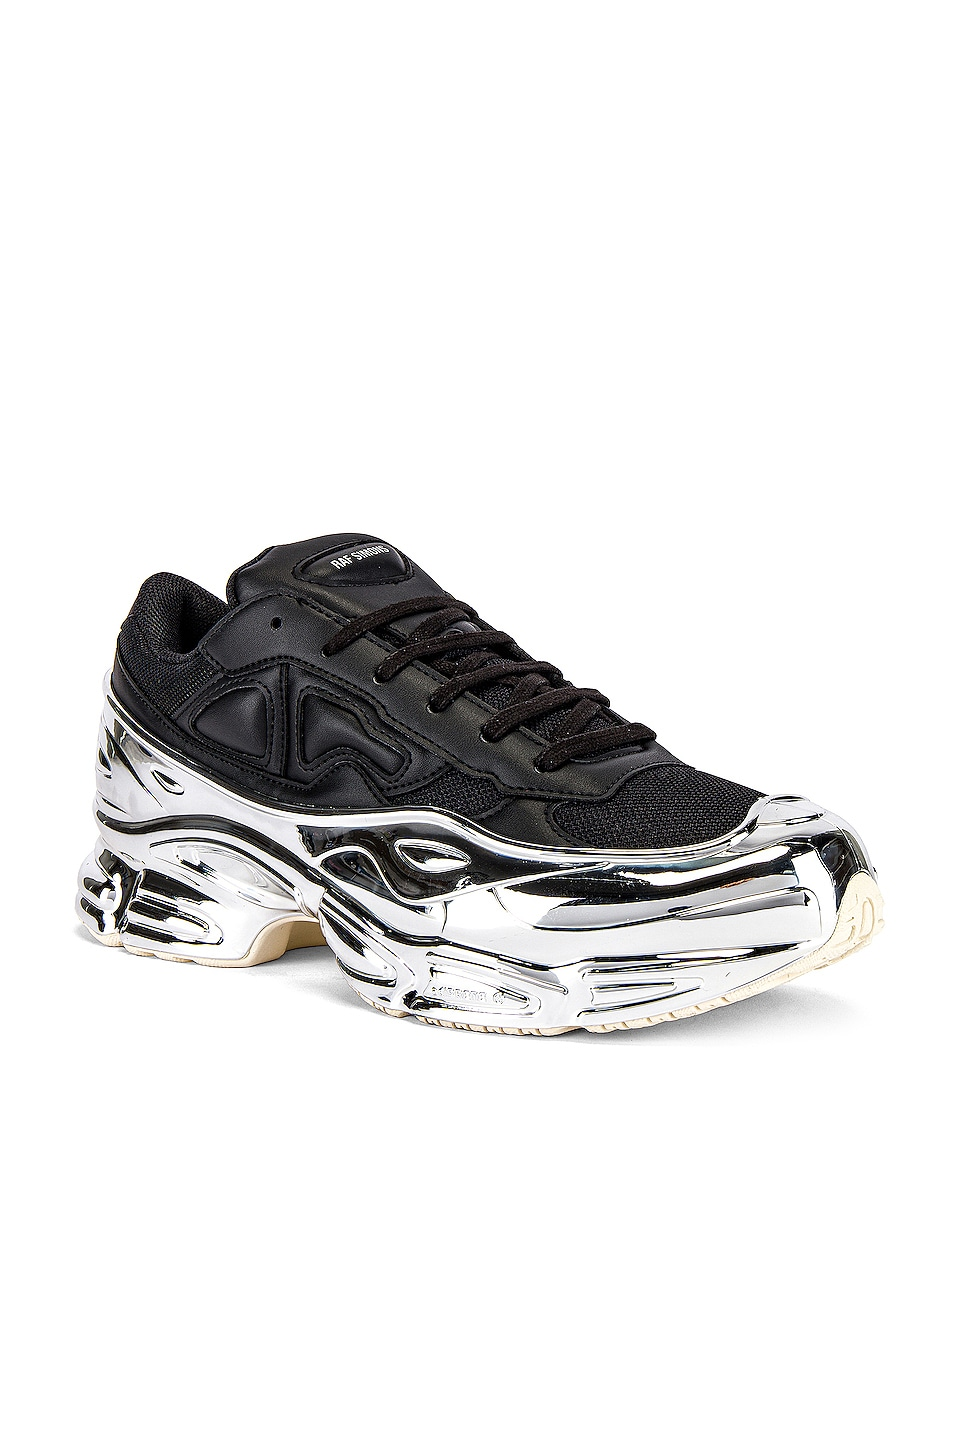 adidas by Raf Simons Ozweego Sneaker in Black & Silver